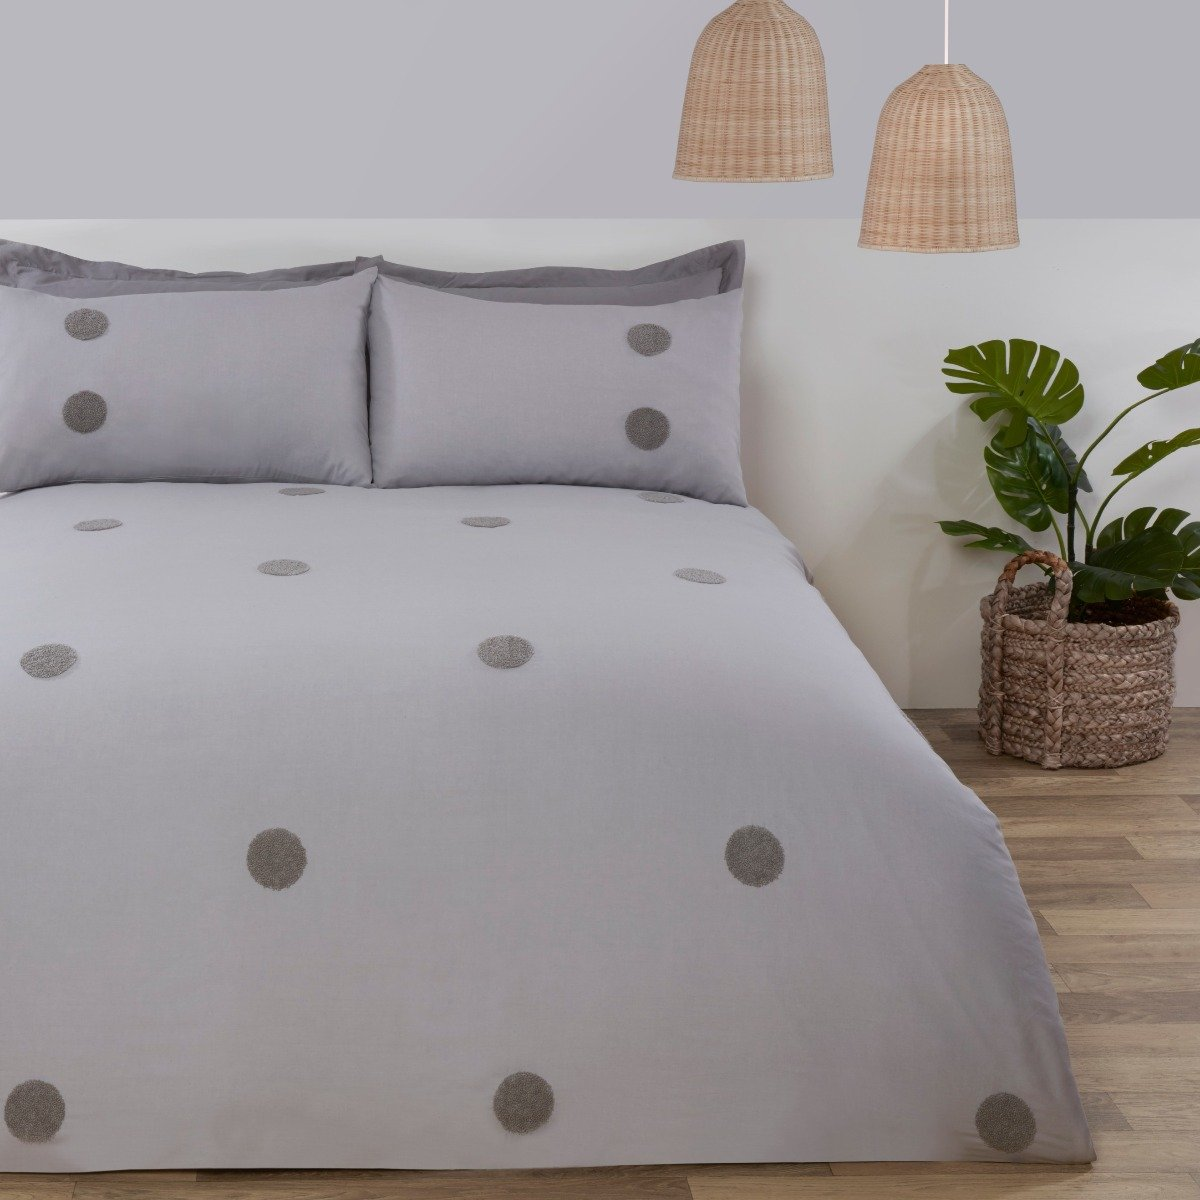 Embroidered Circles Bedding - Duvet Cover and Pillowcase Set